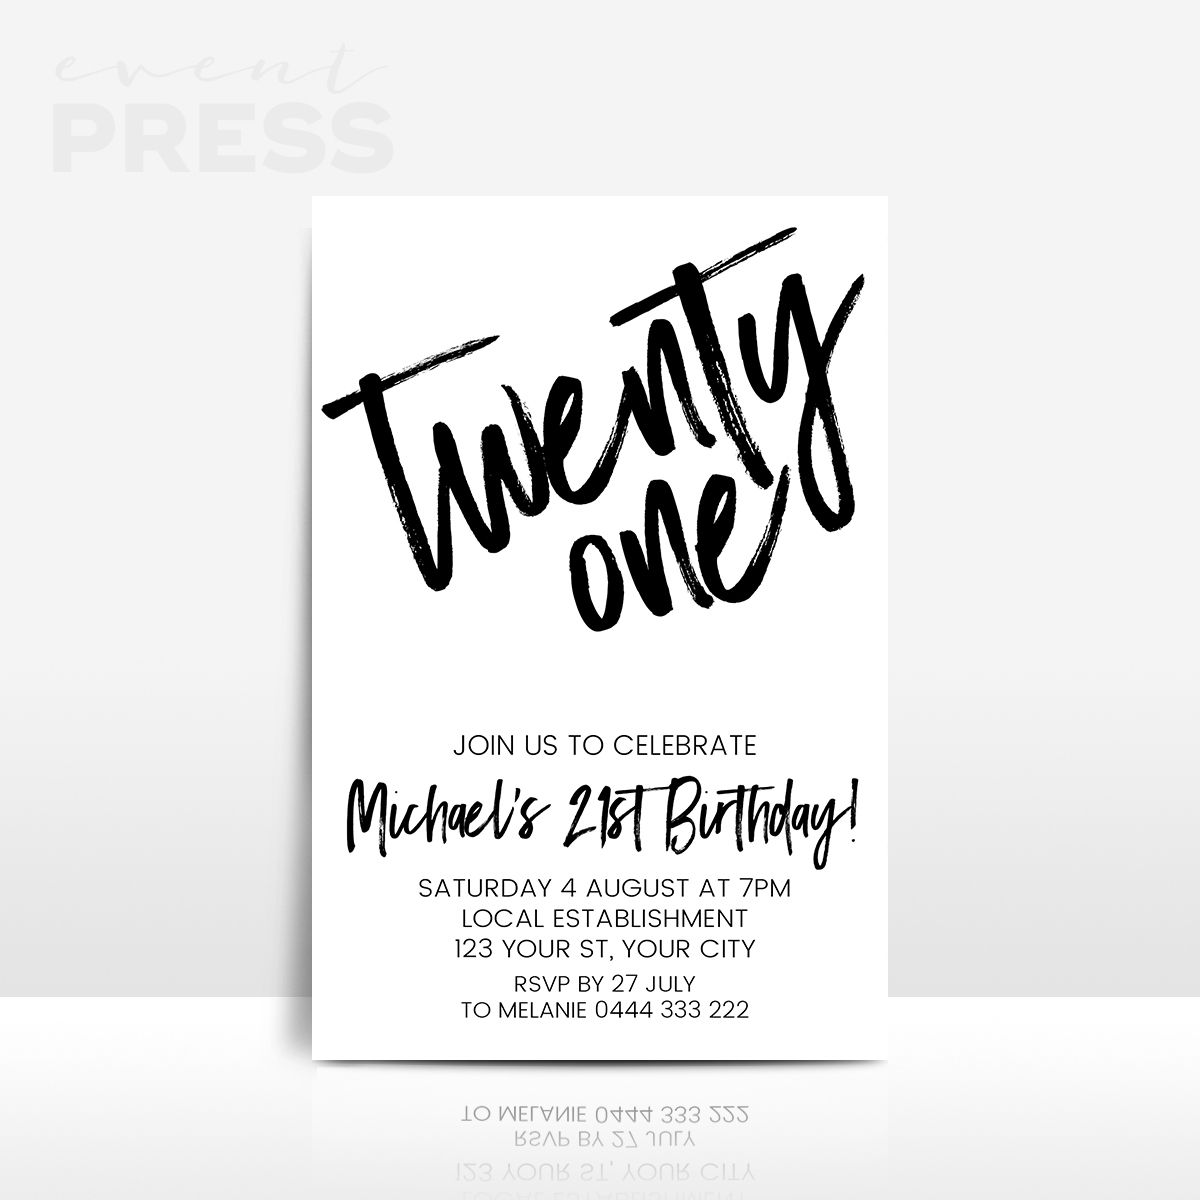 21st birthday invitation in black and white | Invitations ...